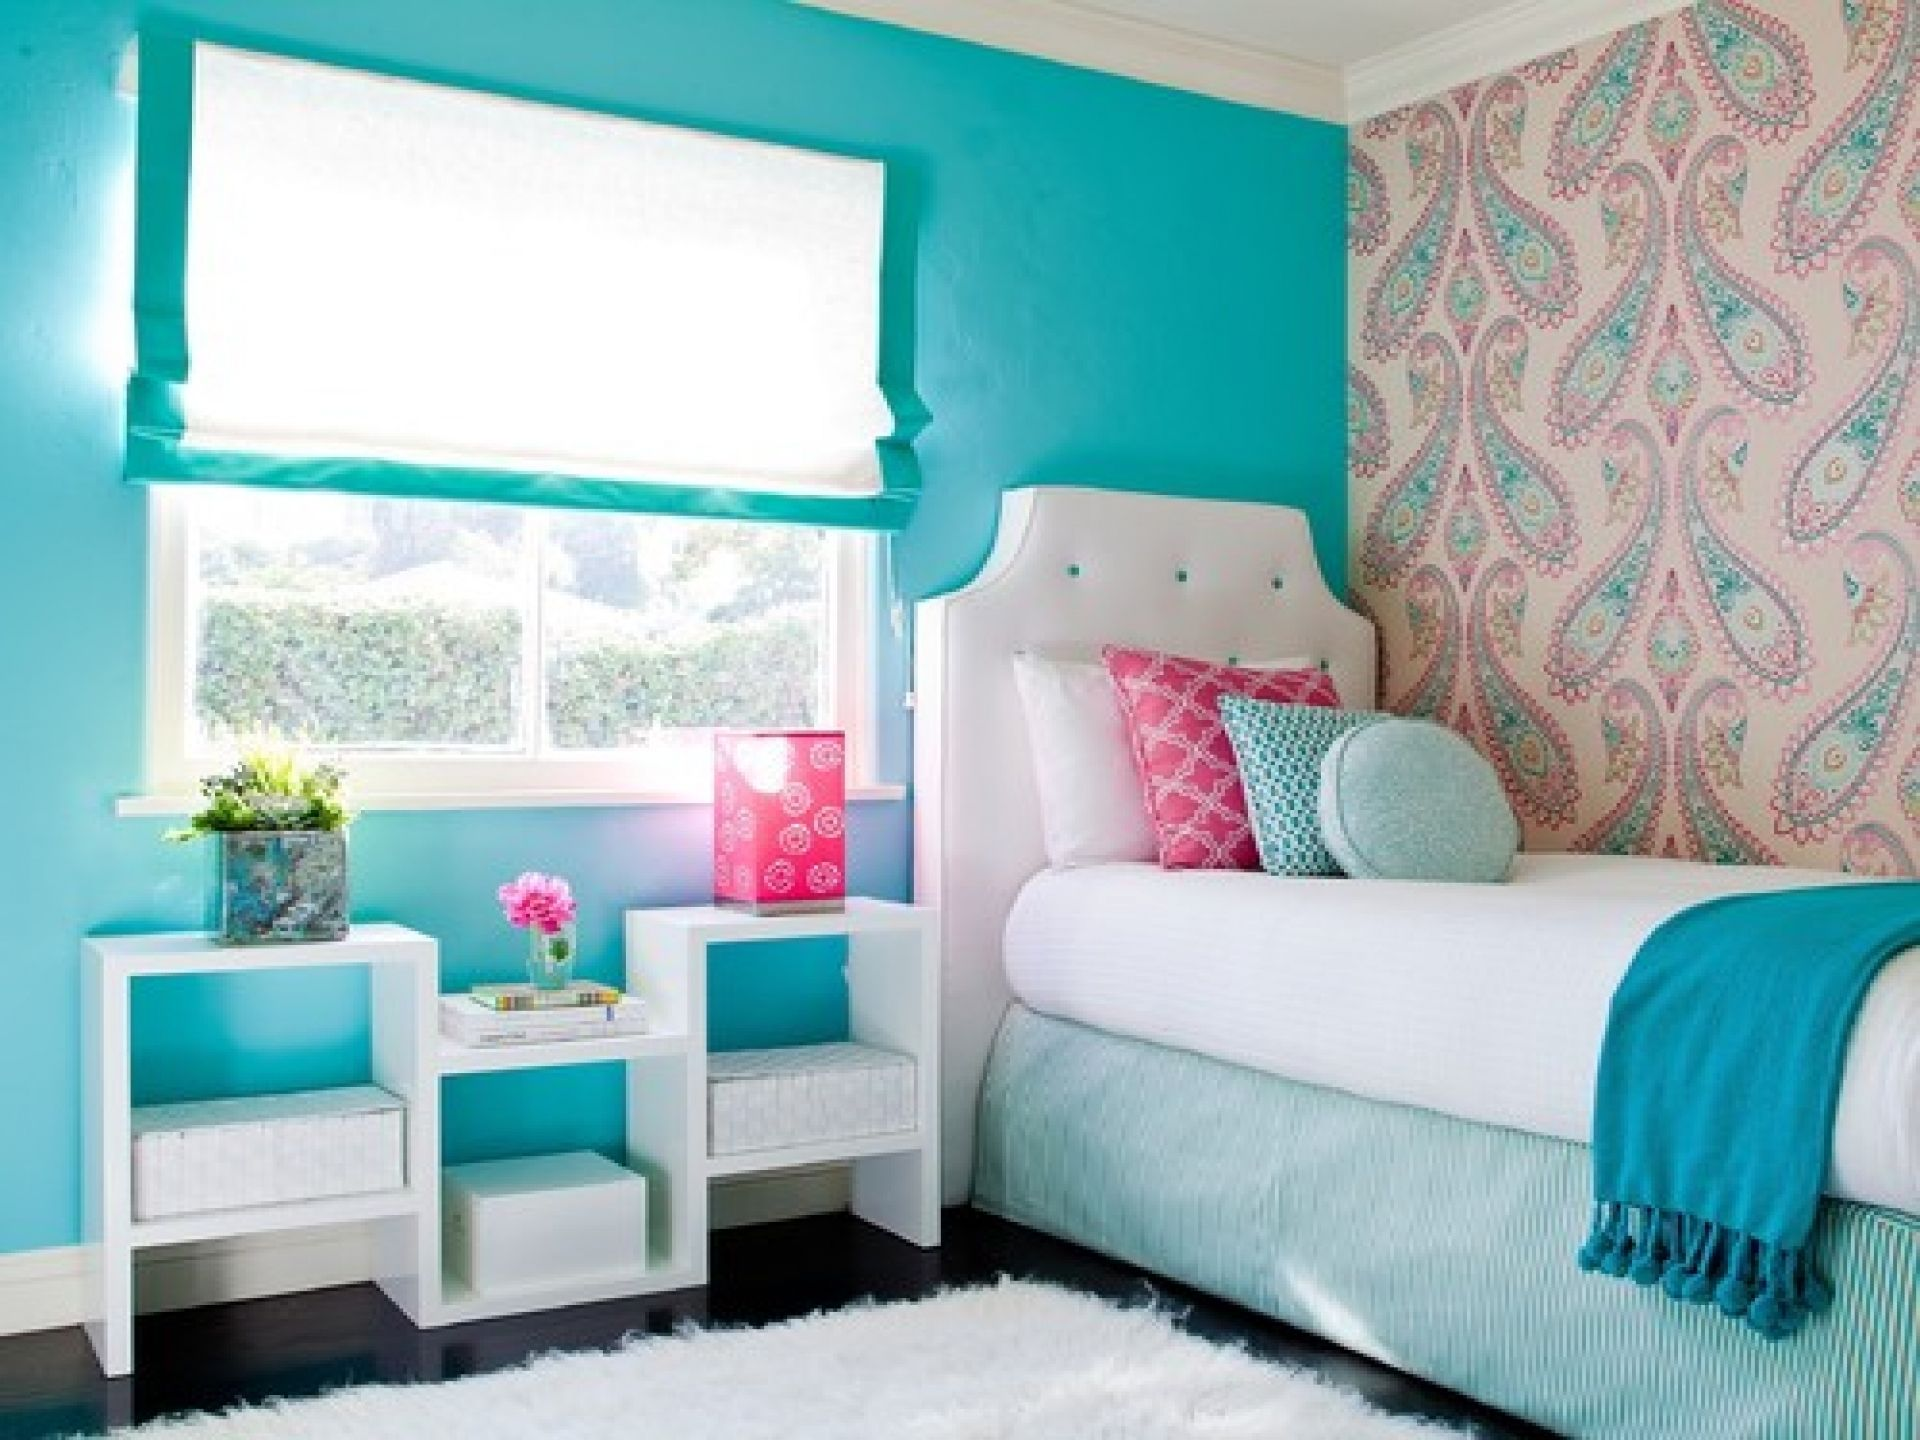 Bedroom Colors For Teenage Girl Simple Design Comfy Room Colors Teenage Girl Bedroom Wall